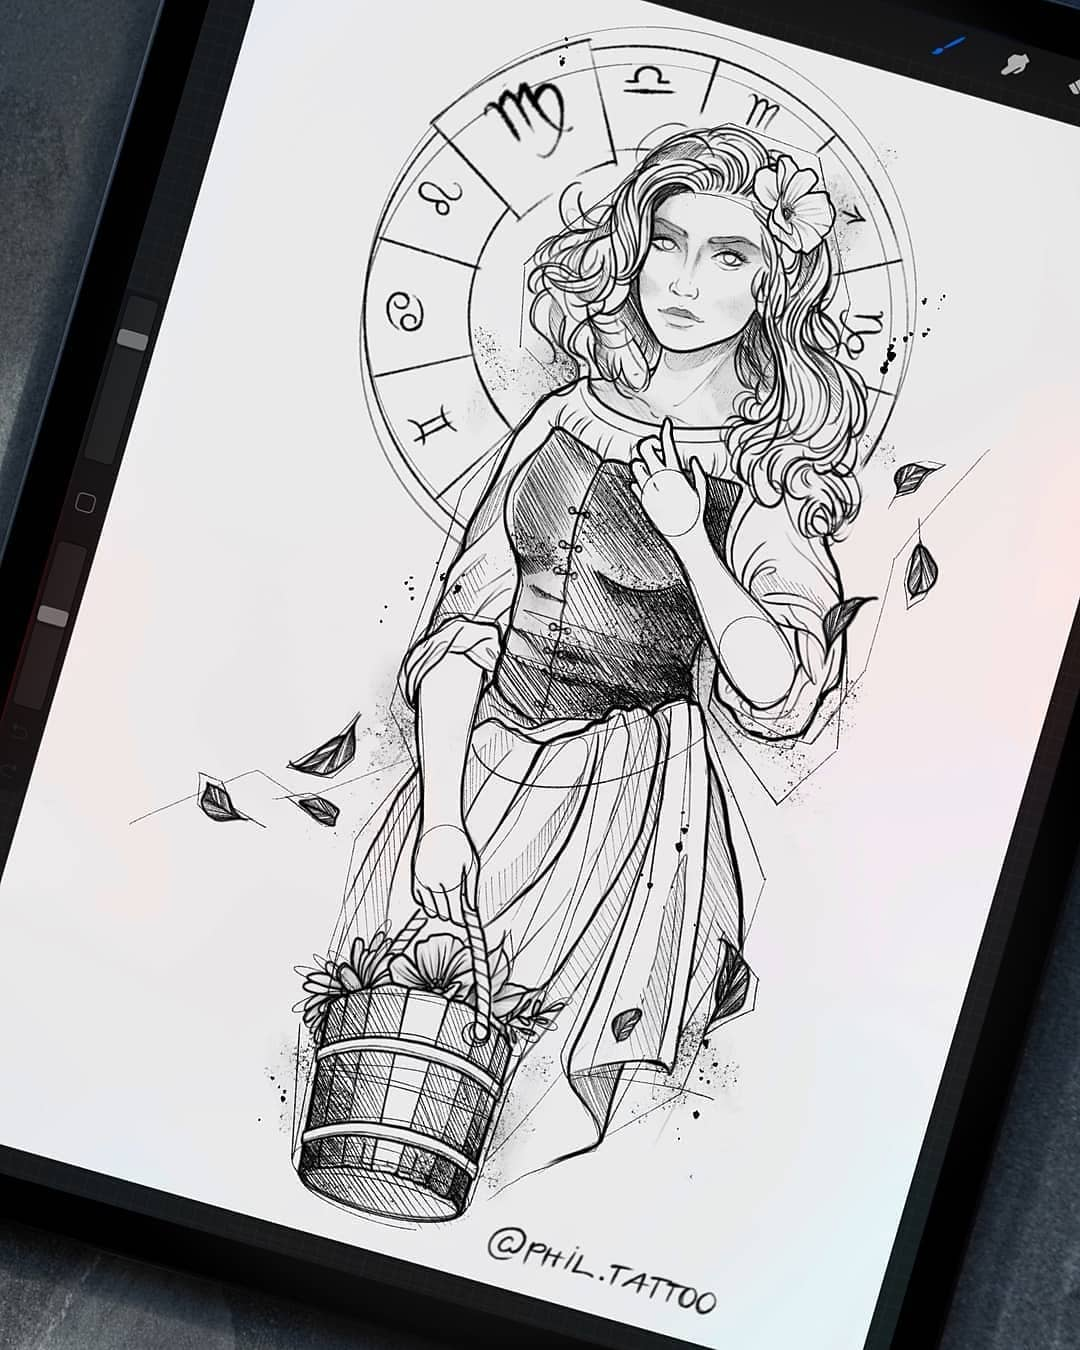 Sketch for tattoo, Virgo girl on the theme of zodiac signs